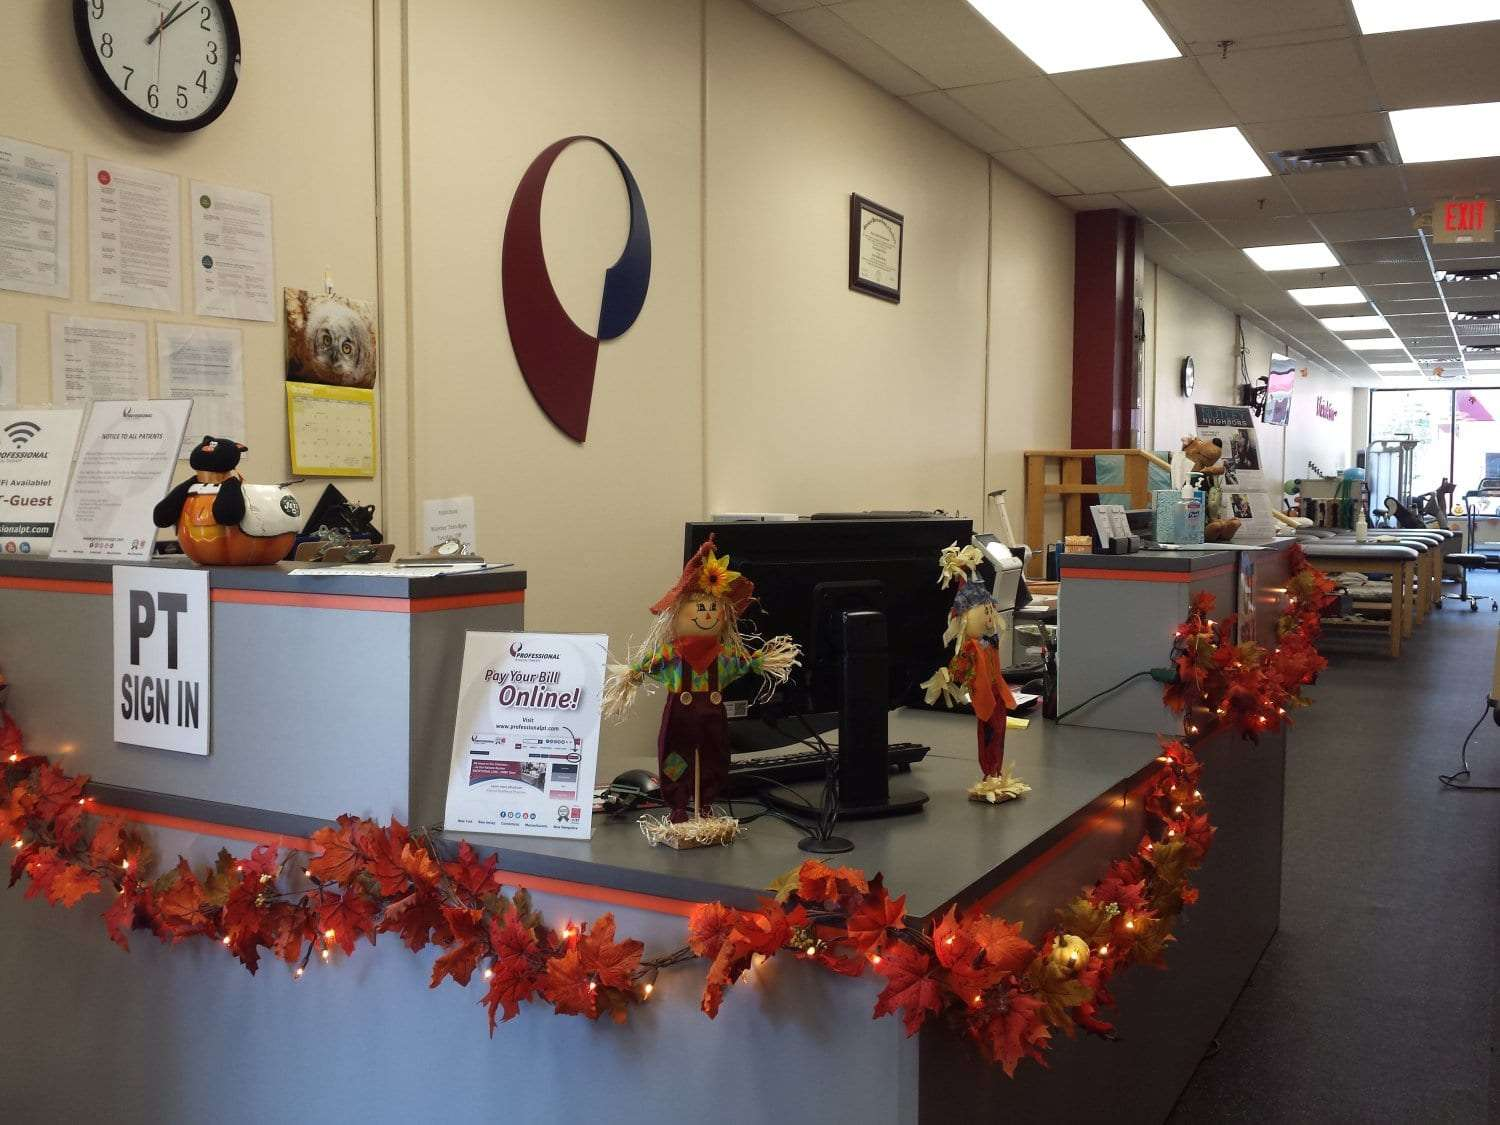 Here is a photo of the front desk at our physical therapy clinic in Nutley, New Jersey at Midtown.